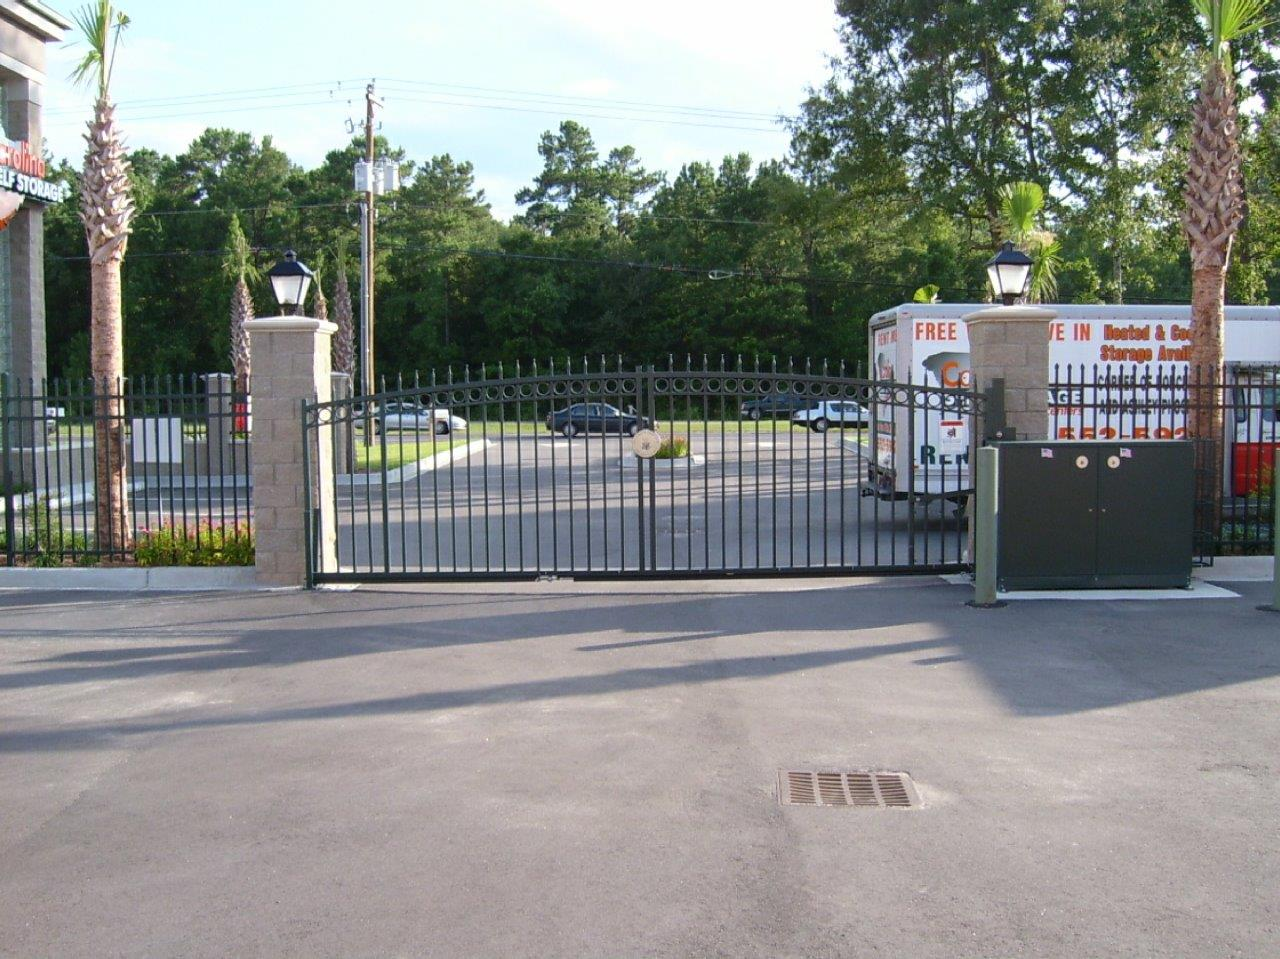 Carolina Self Storage - Security Gate Entry System